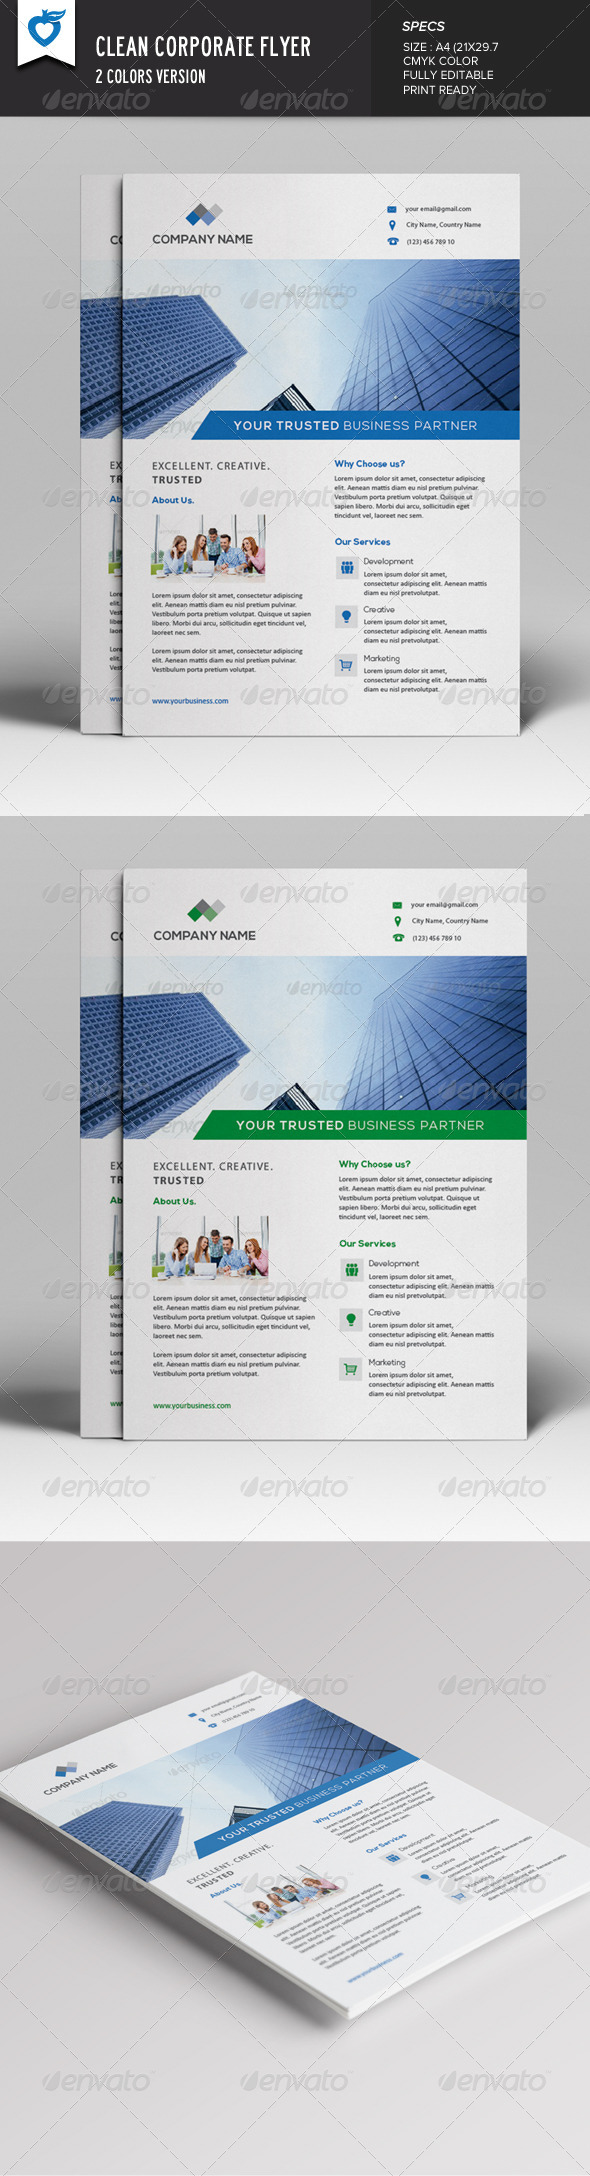 GraphicRiver Clean Corporate Flyer 7696159